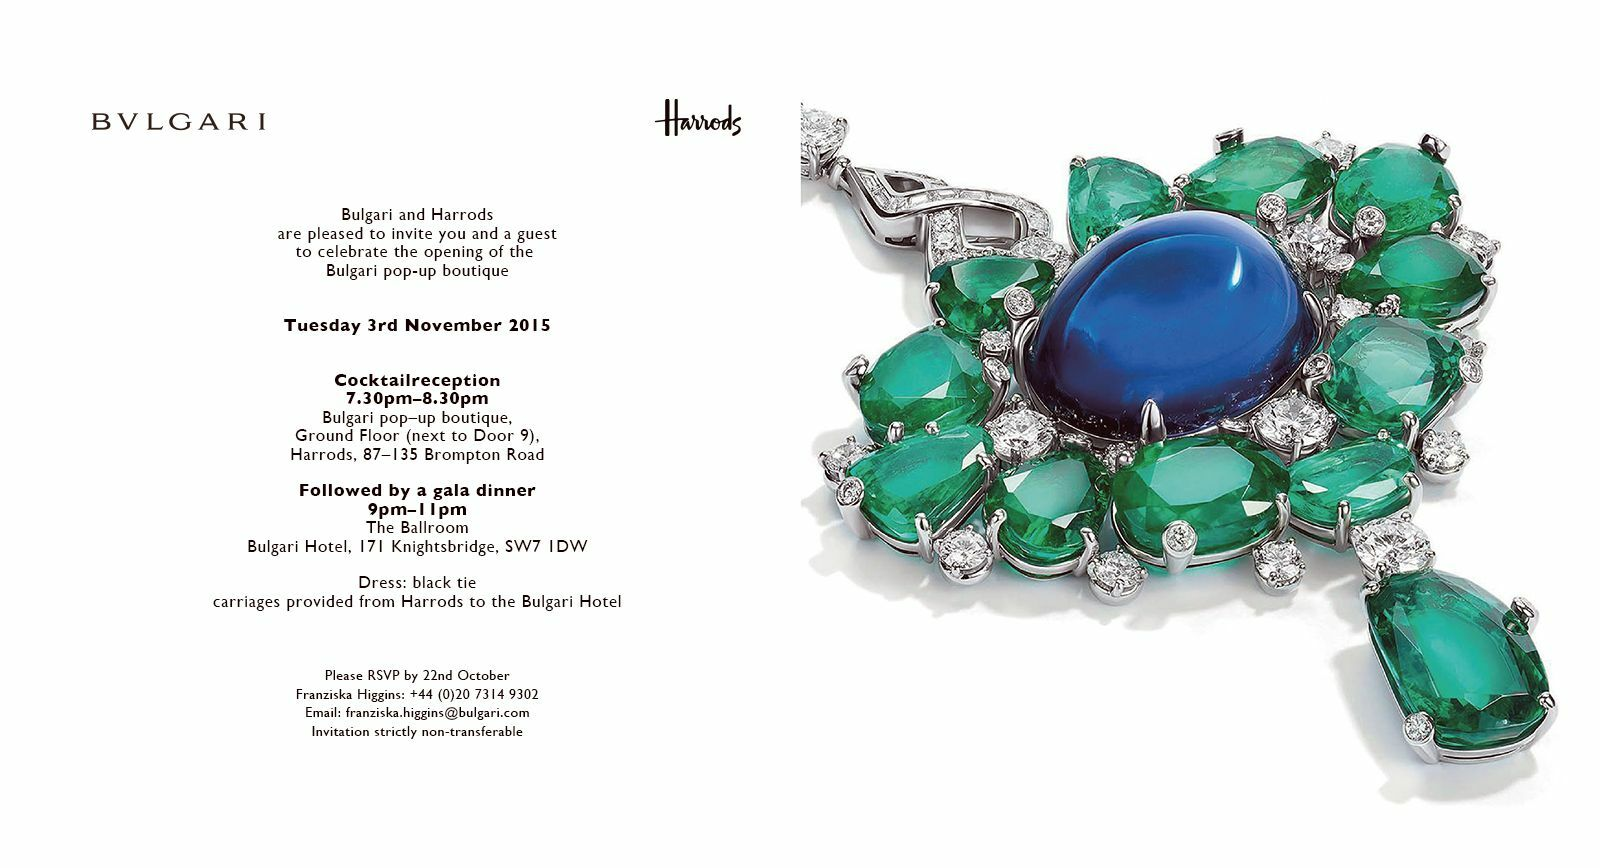 Discover Exclusive Bulgari Pieces at the Pop-Up Salon in Harrods